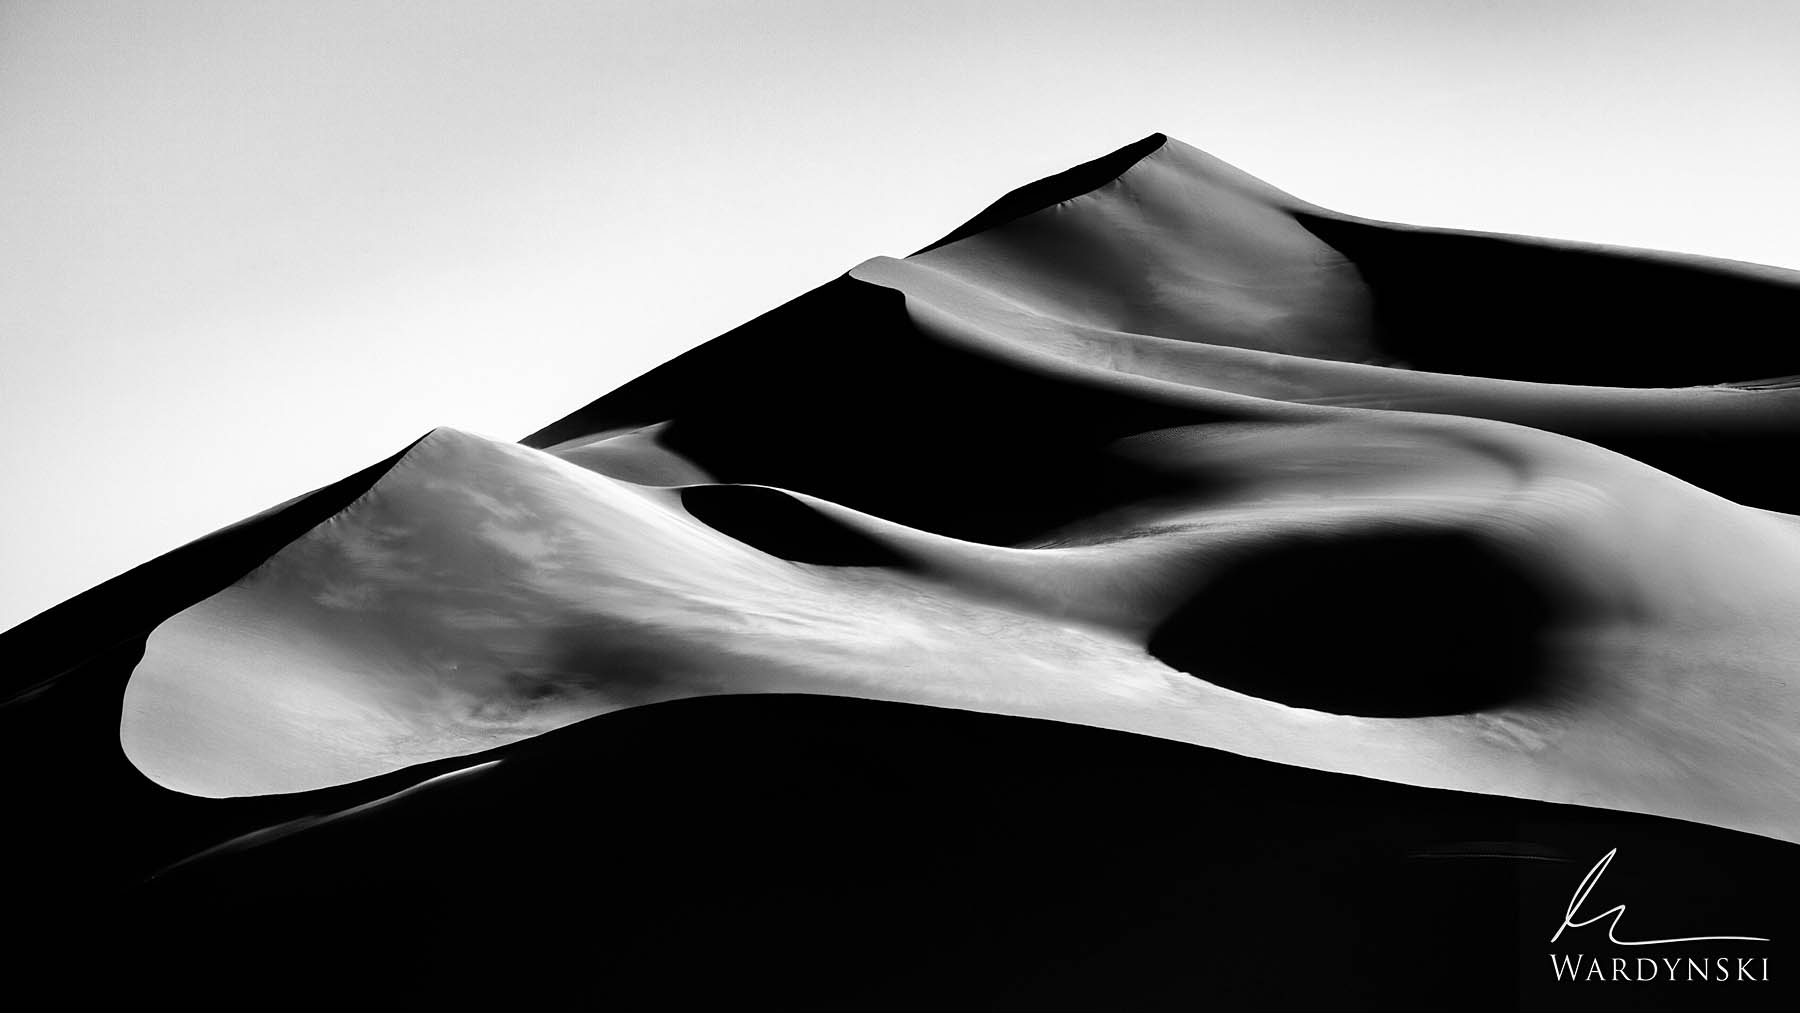 Black and White Fine Art Print | Limited Edition of 100  Like silk blowing in the breeze, a mountain of sand voluptuously contours...